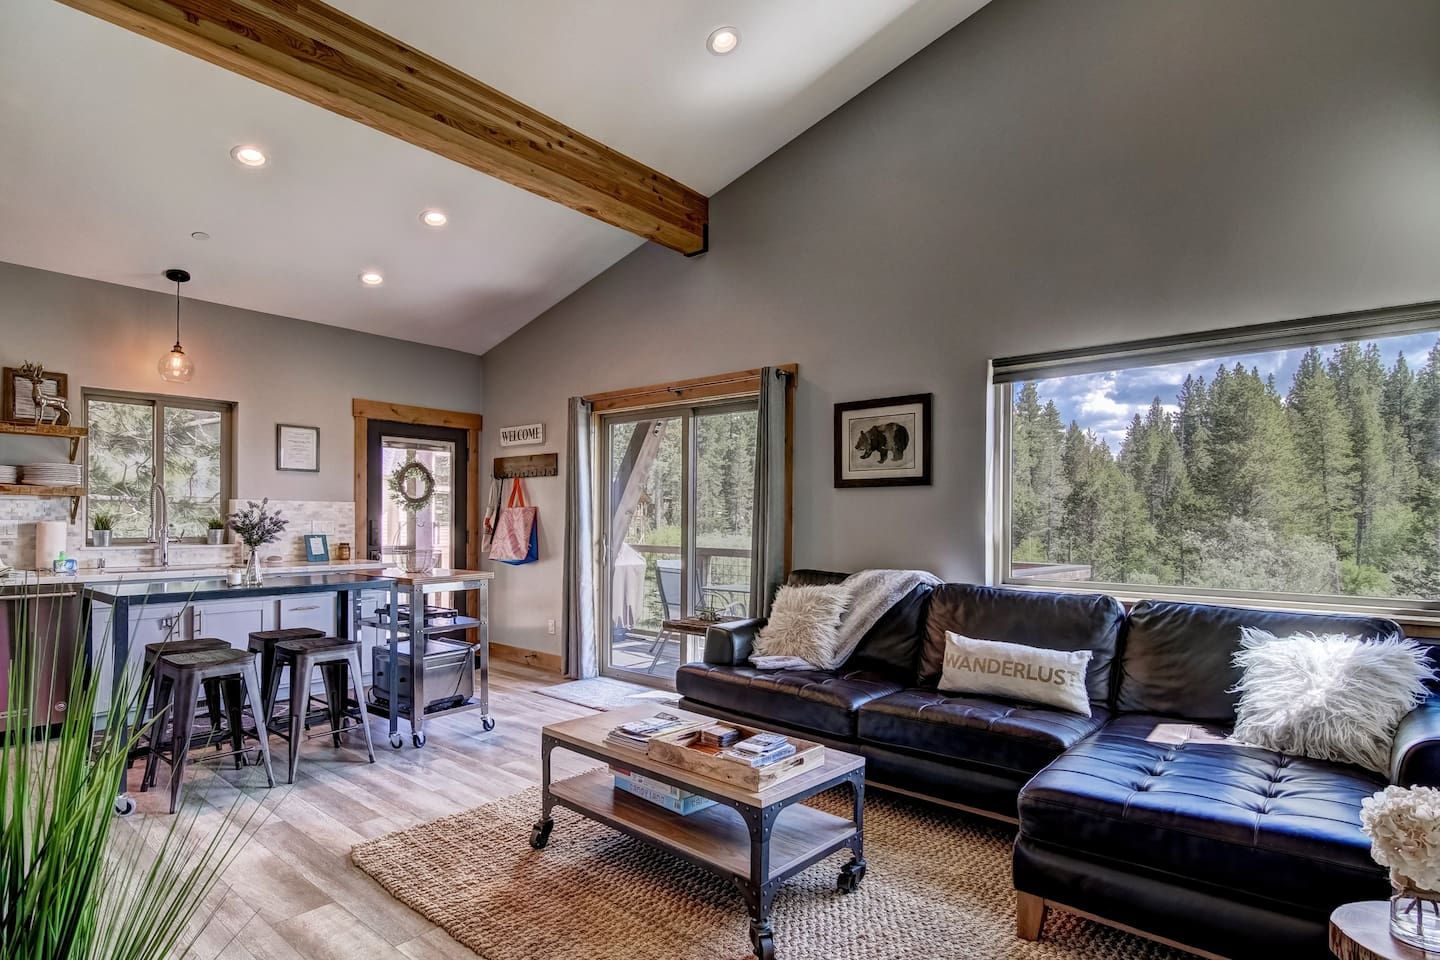 This is the main living area with views of forest and mountains